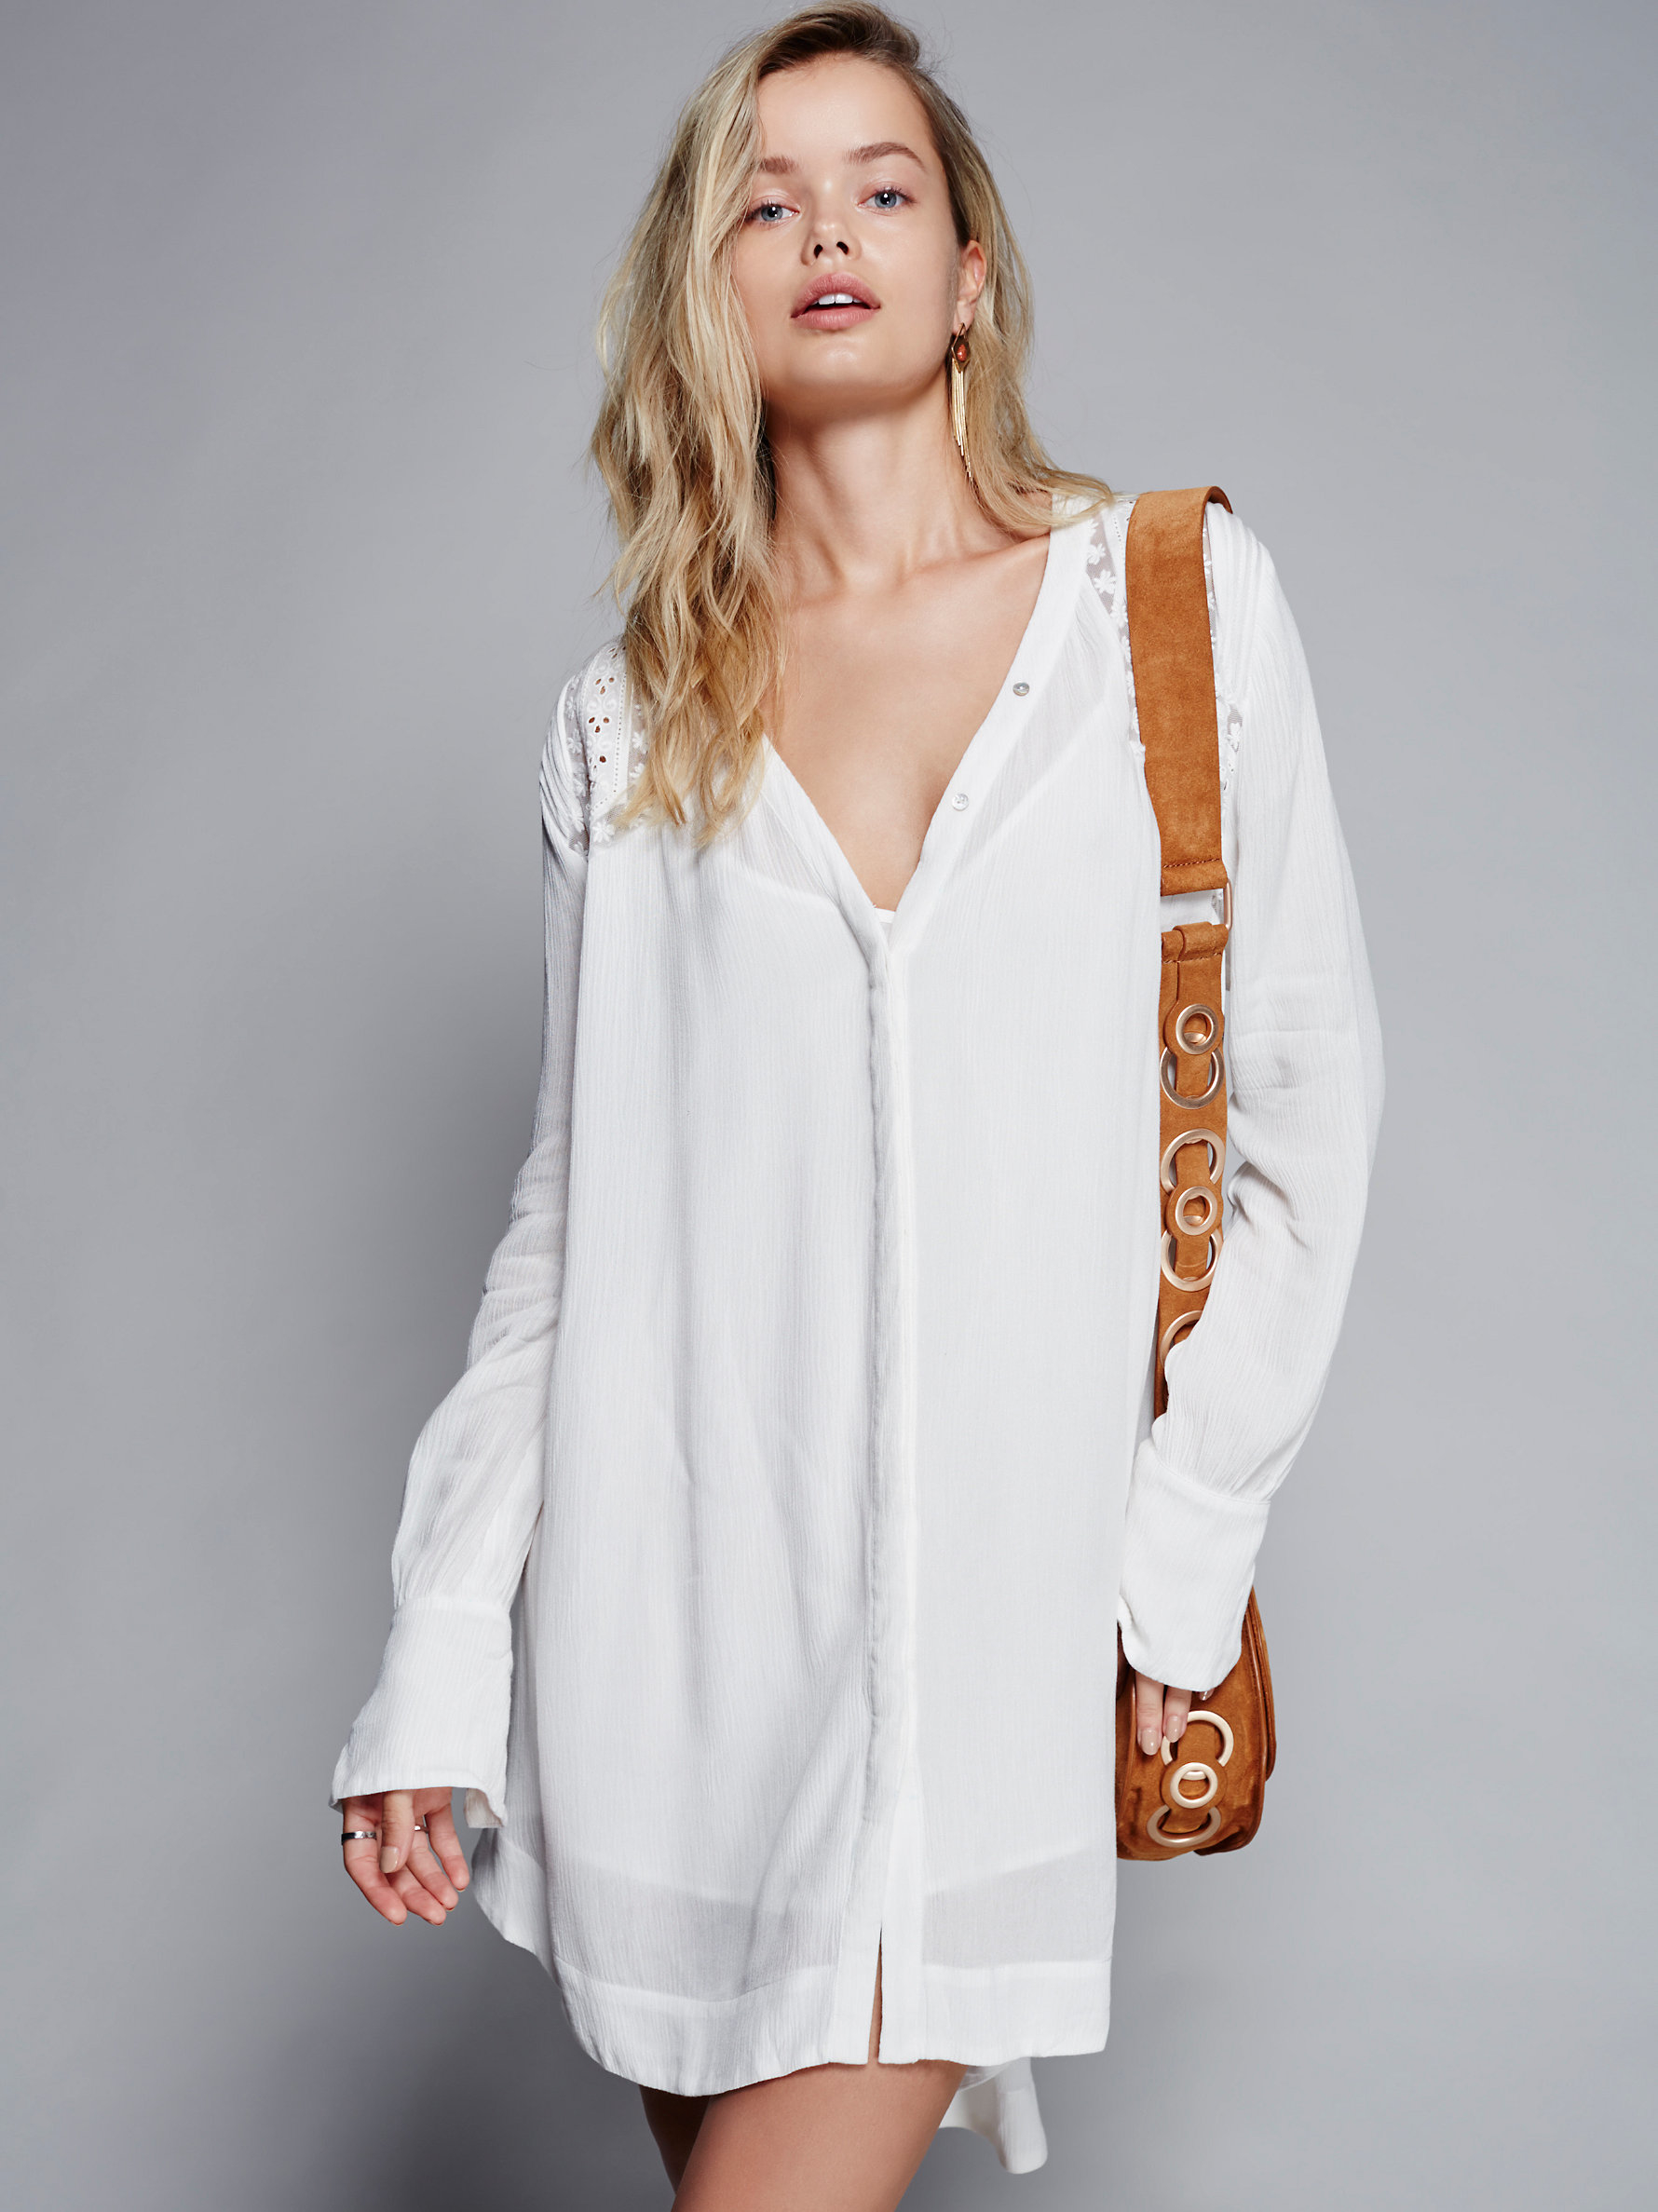 Free People Courtney S Victorian Shirt Dress In White Lyst